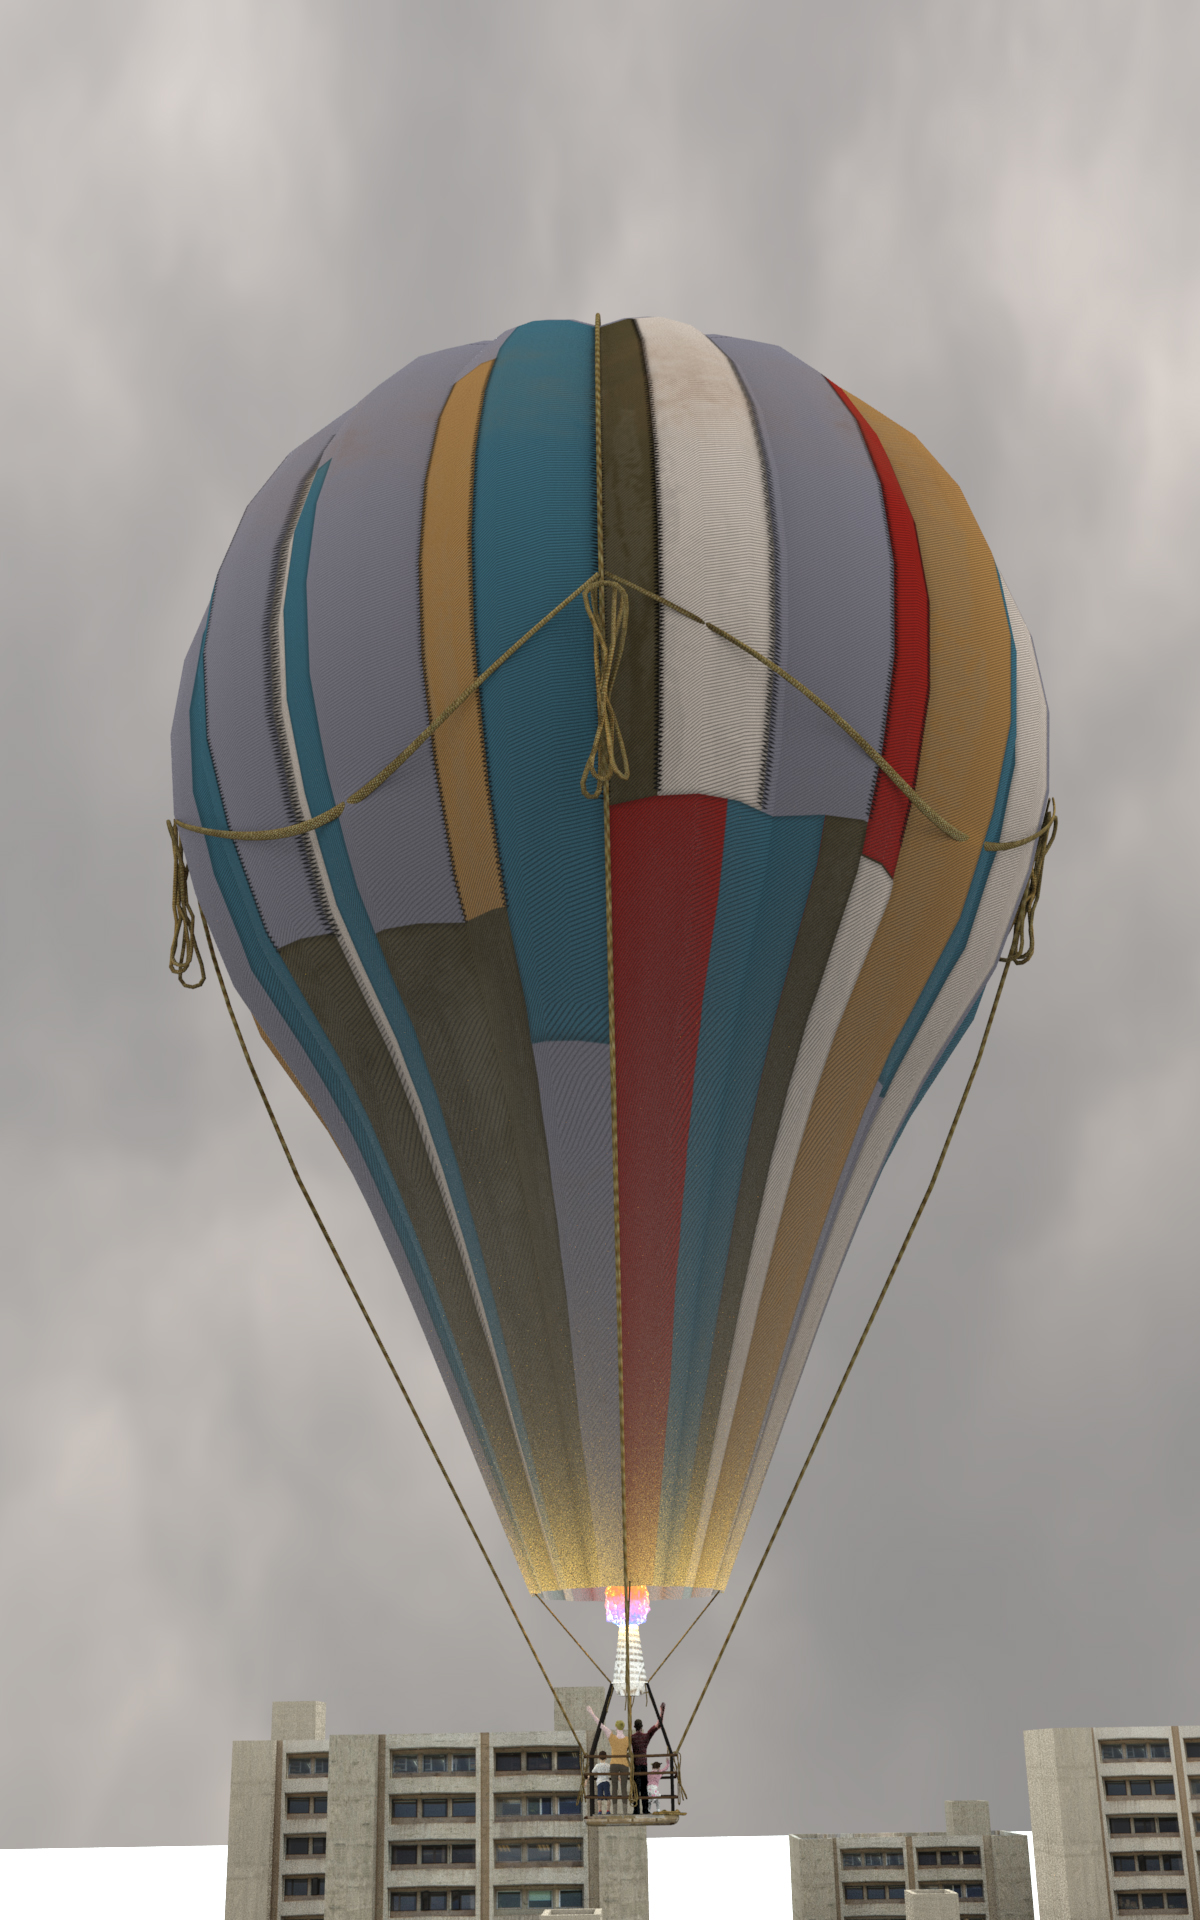 LBC_Balloon_Escape_0111